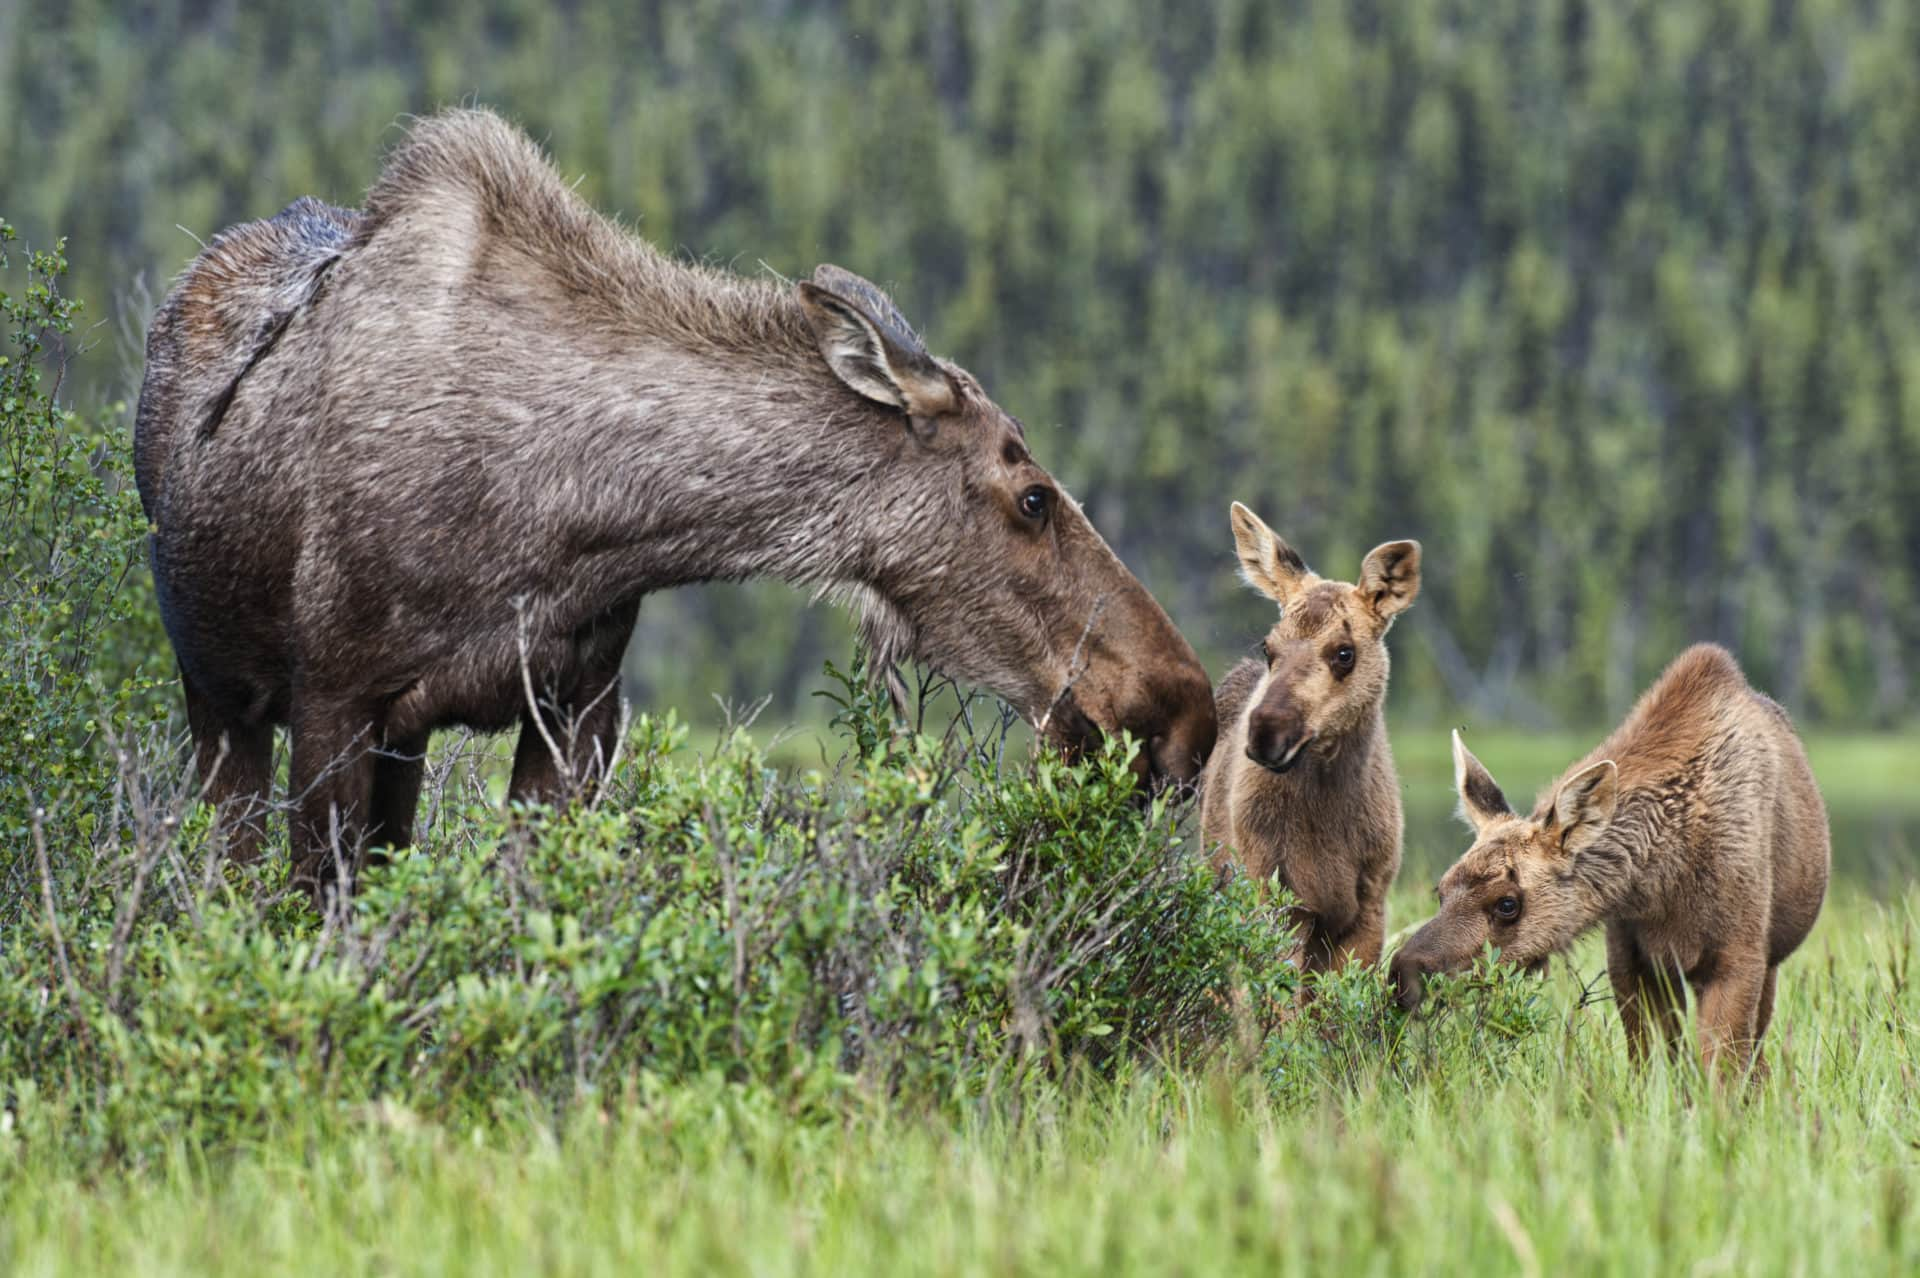 A moose cow and her calves in a meadow